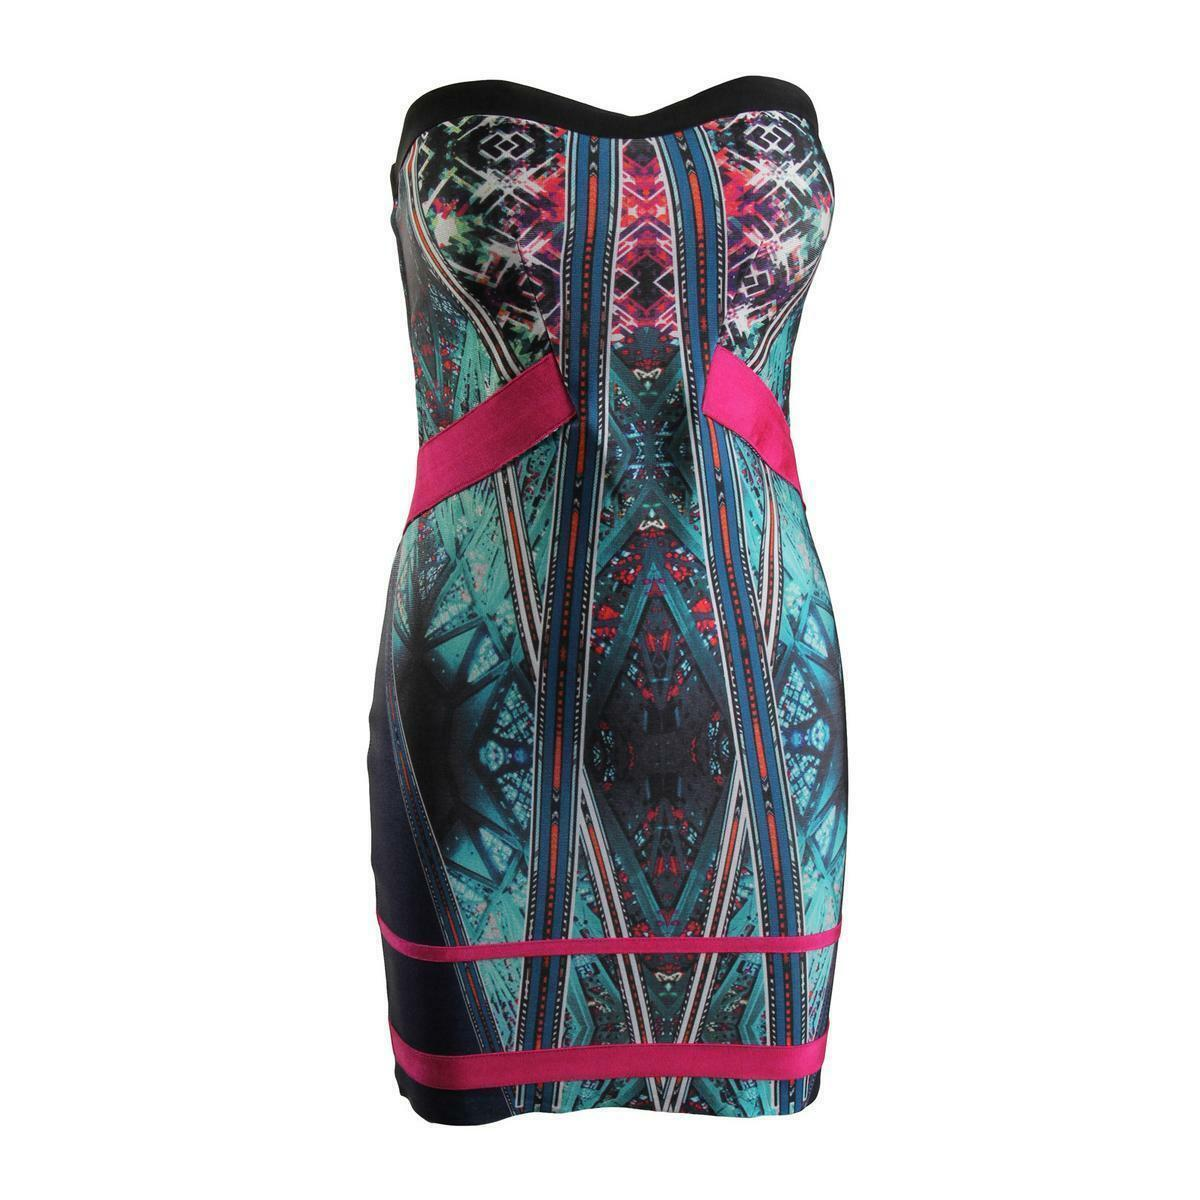 388 WOW COUTURE WOMEN'S blueE PINK PRINTED STRAPLESS SHEATH MINI DRESS SIZE S